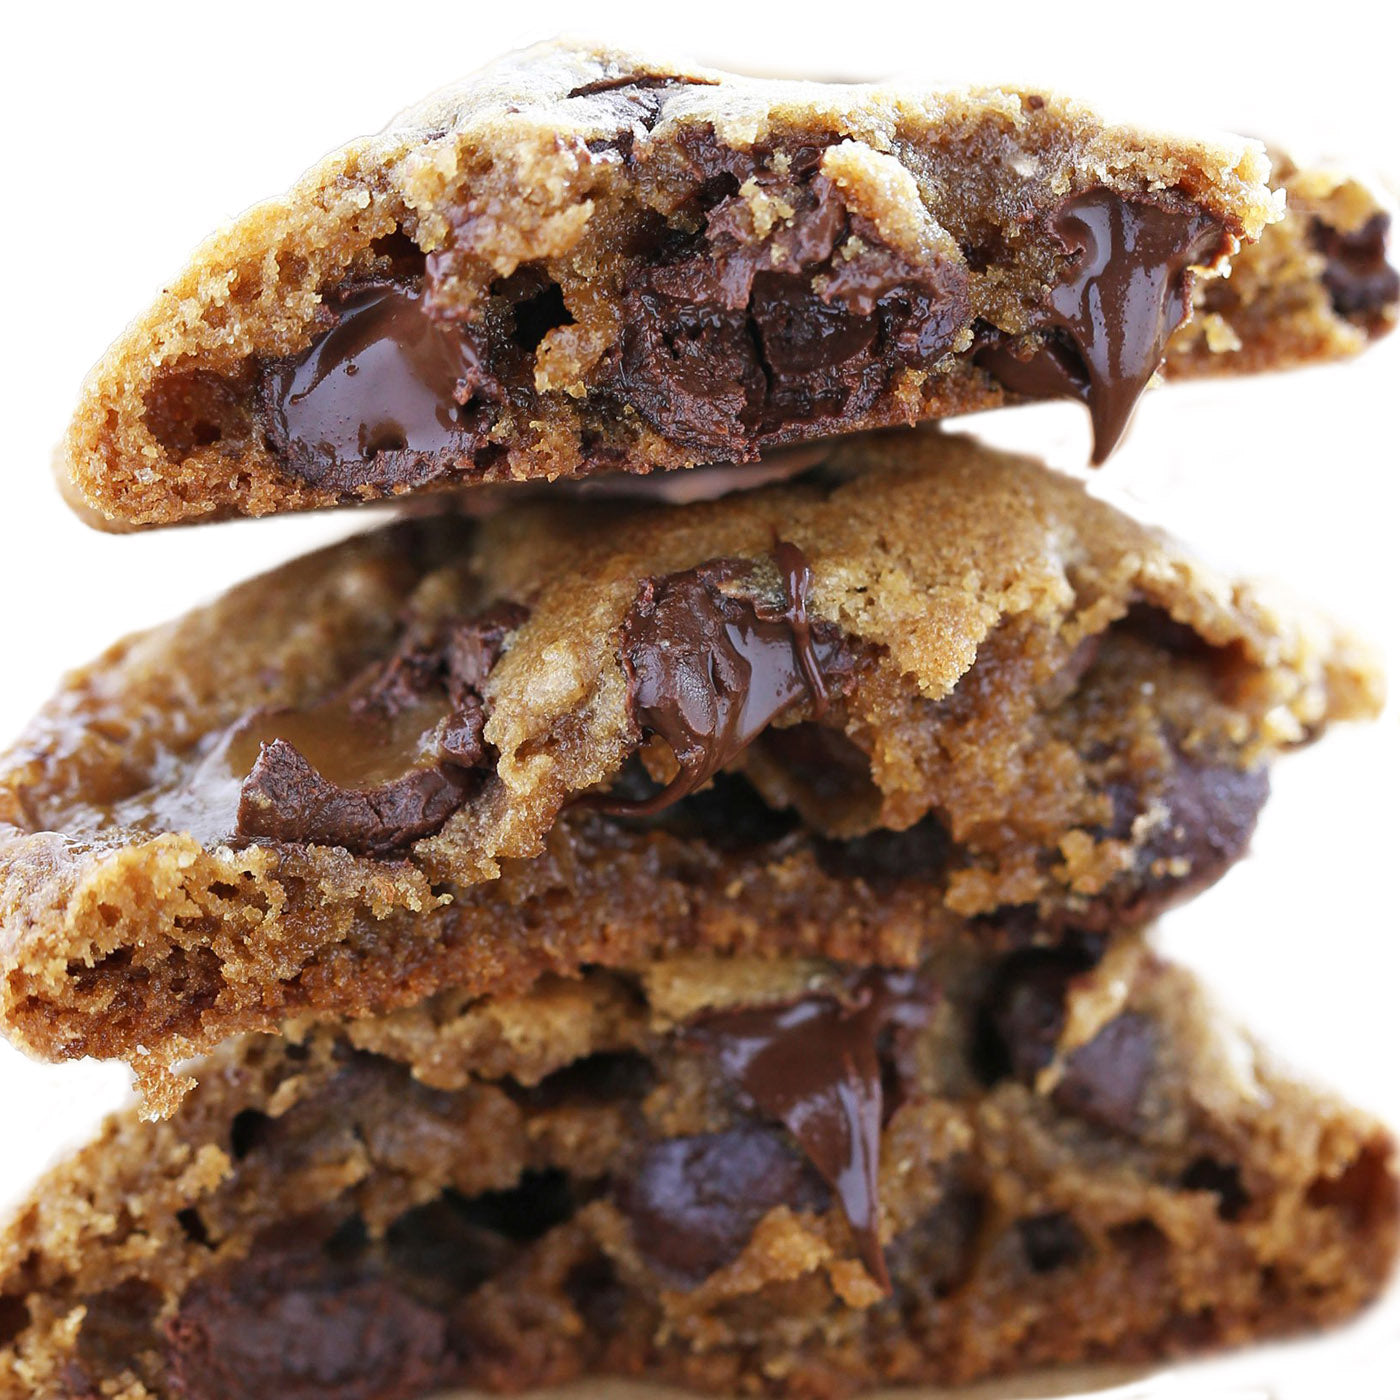 Ultimate Cookie made with Dark Chocolate Chips, Butterscotch Chips and Peanut Butter